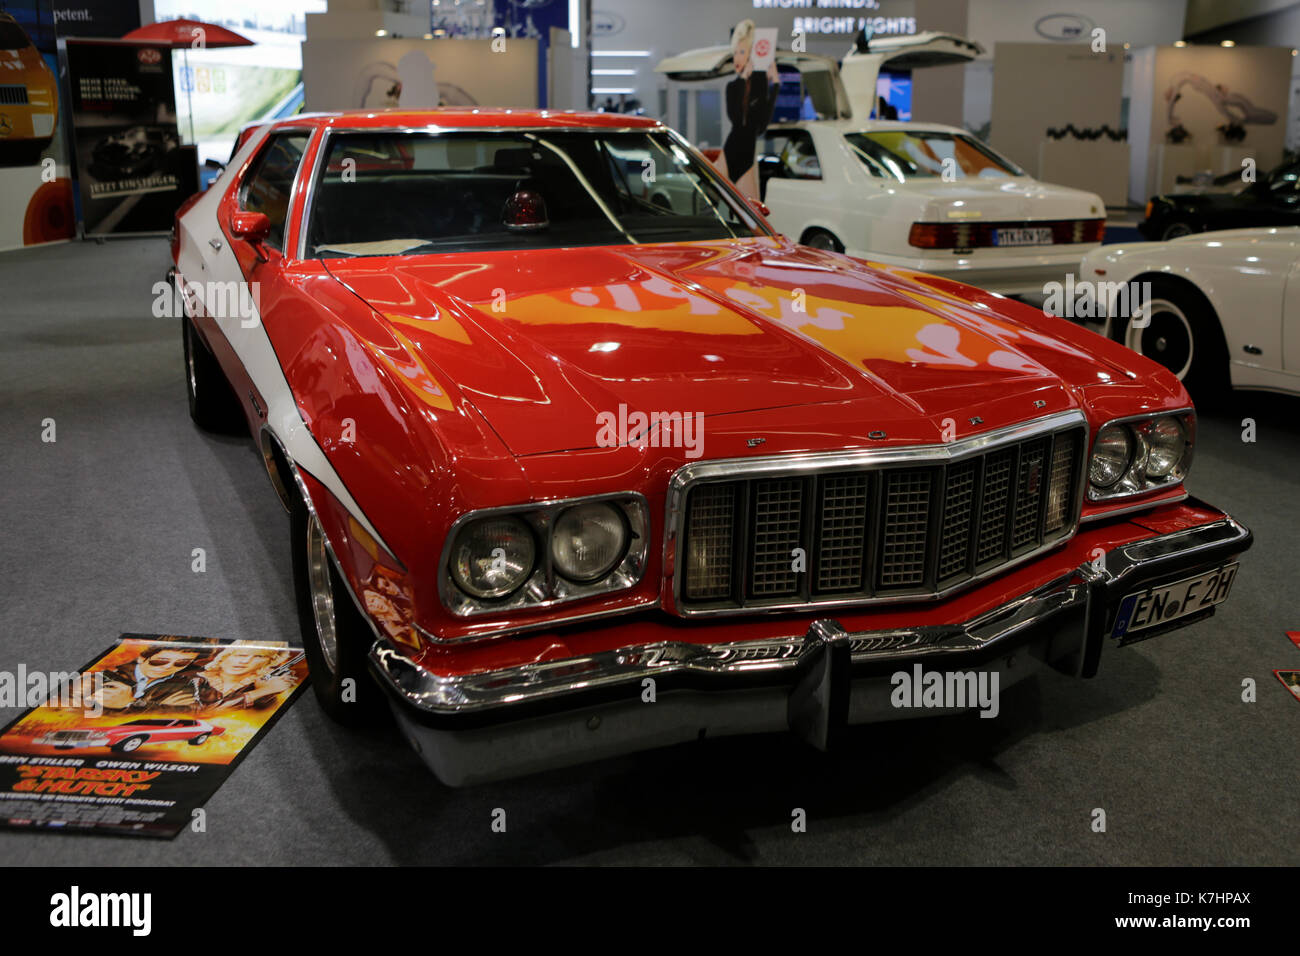 ford gran torino starsky hutch stock photos ford gran torino starsky hutch stock images alamy. Black Bedroom Furniture Sets. Home Design Ideas